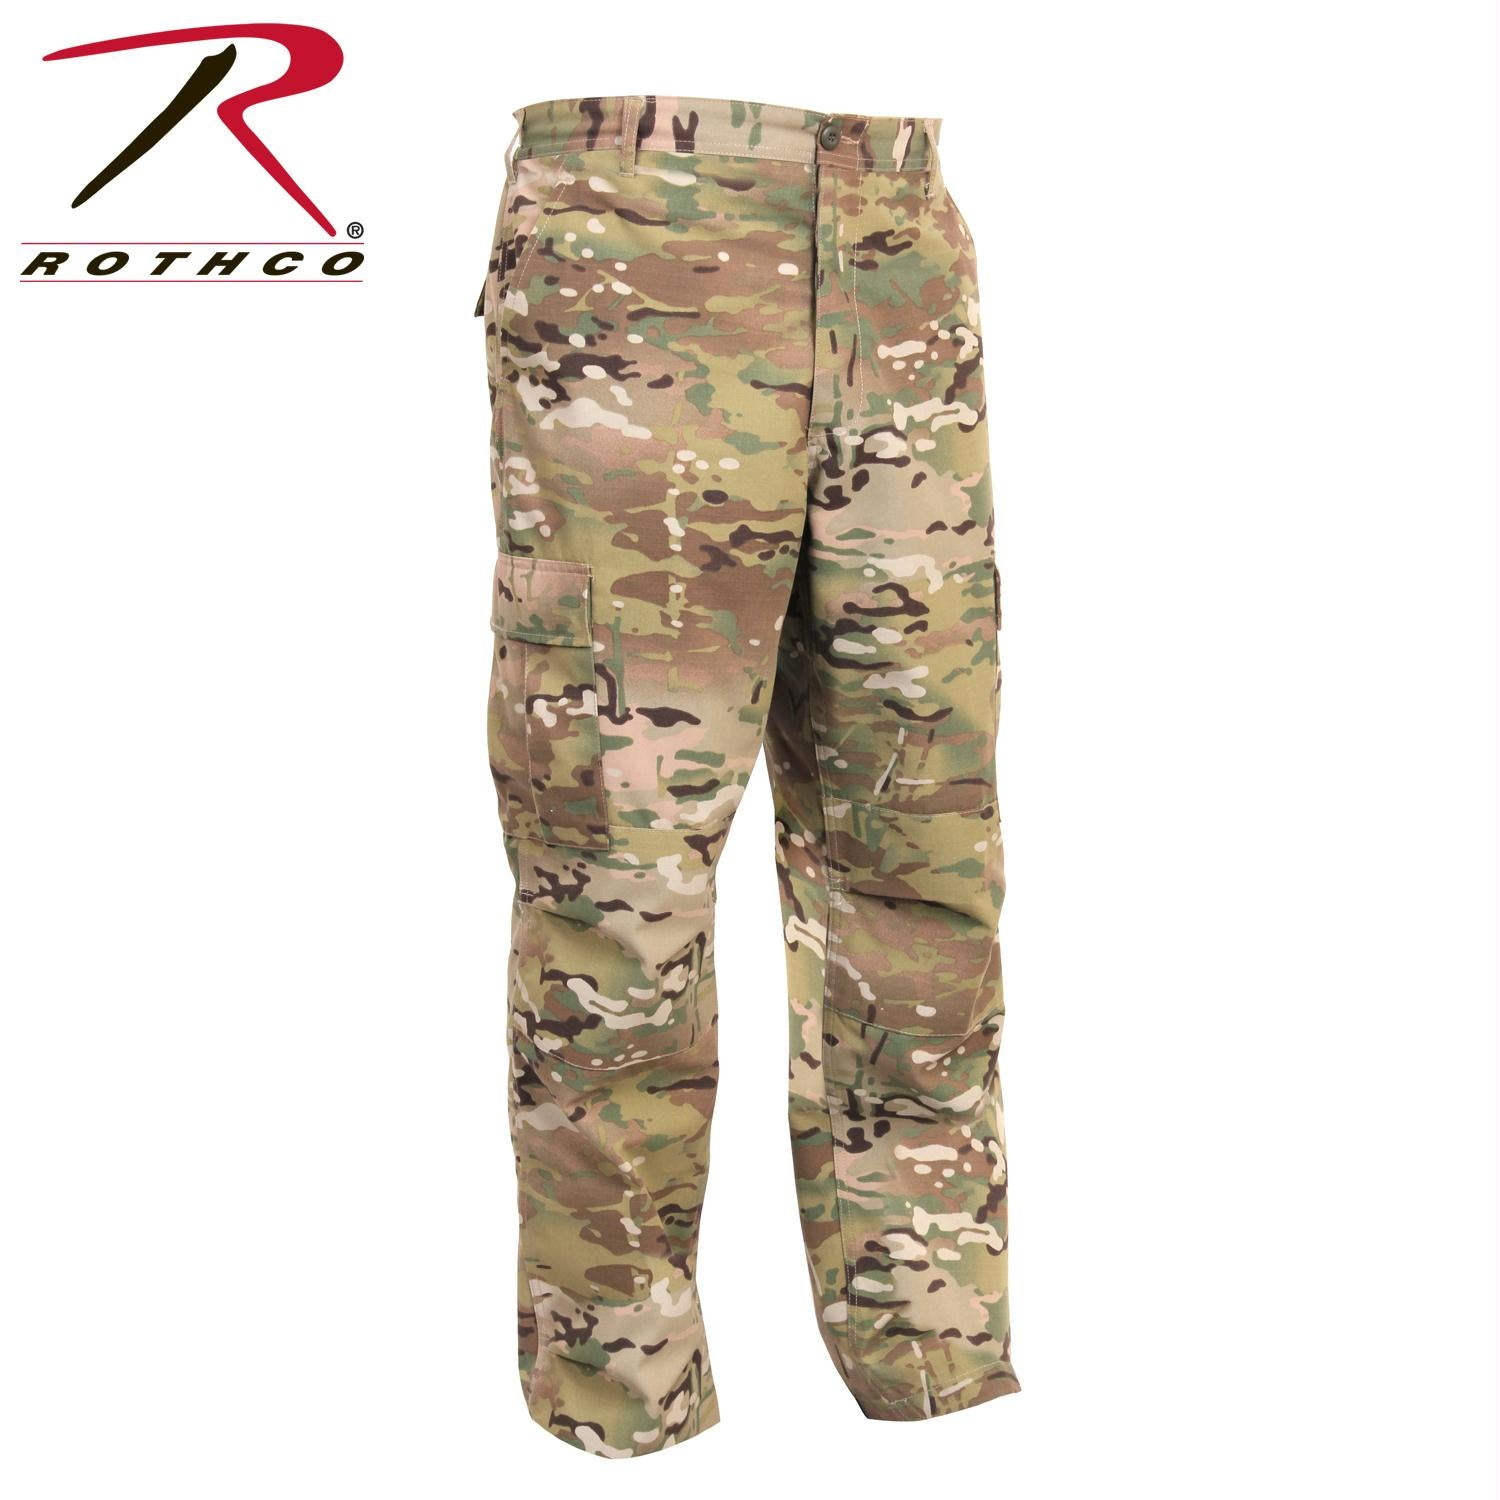 Rothco Camo Tactical BDU Pants - MultiCam / 3XL